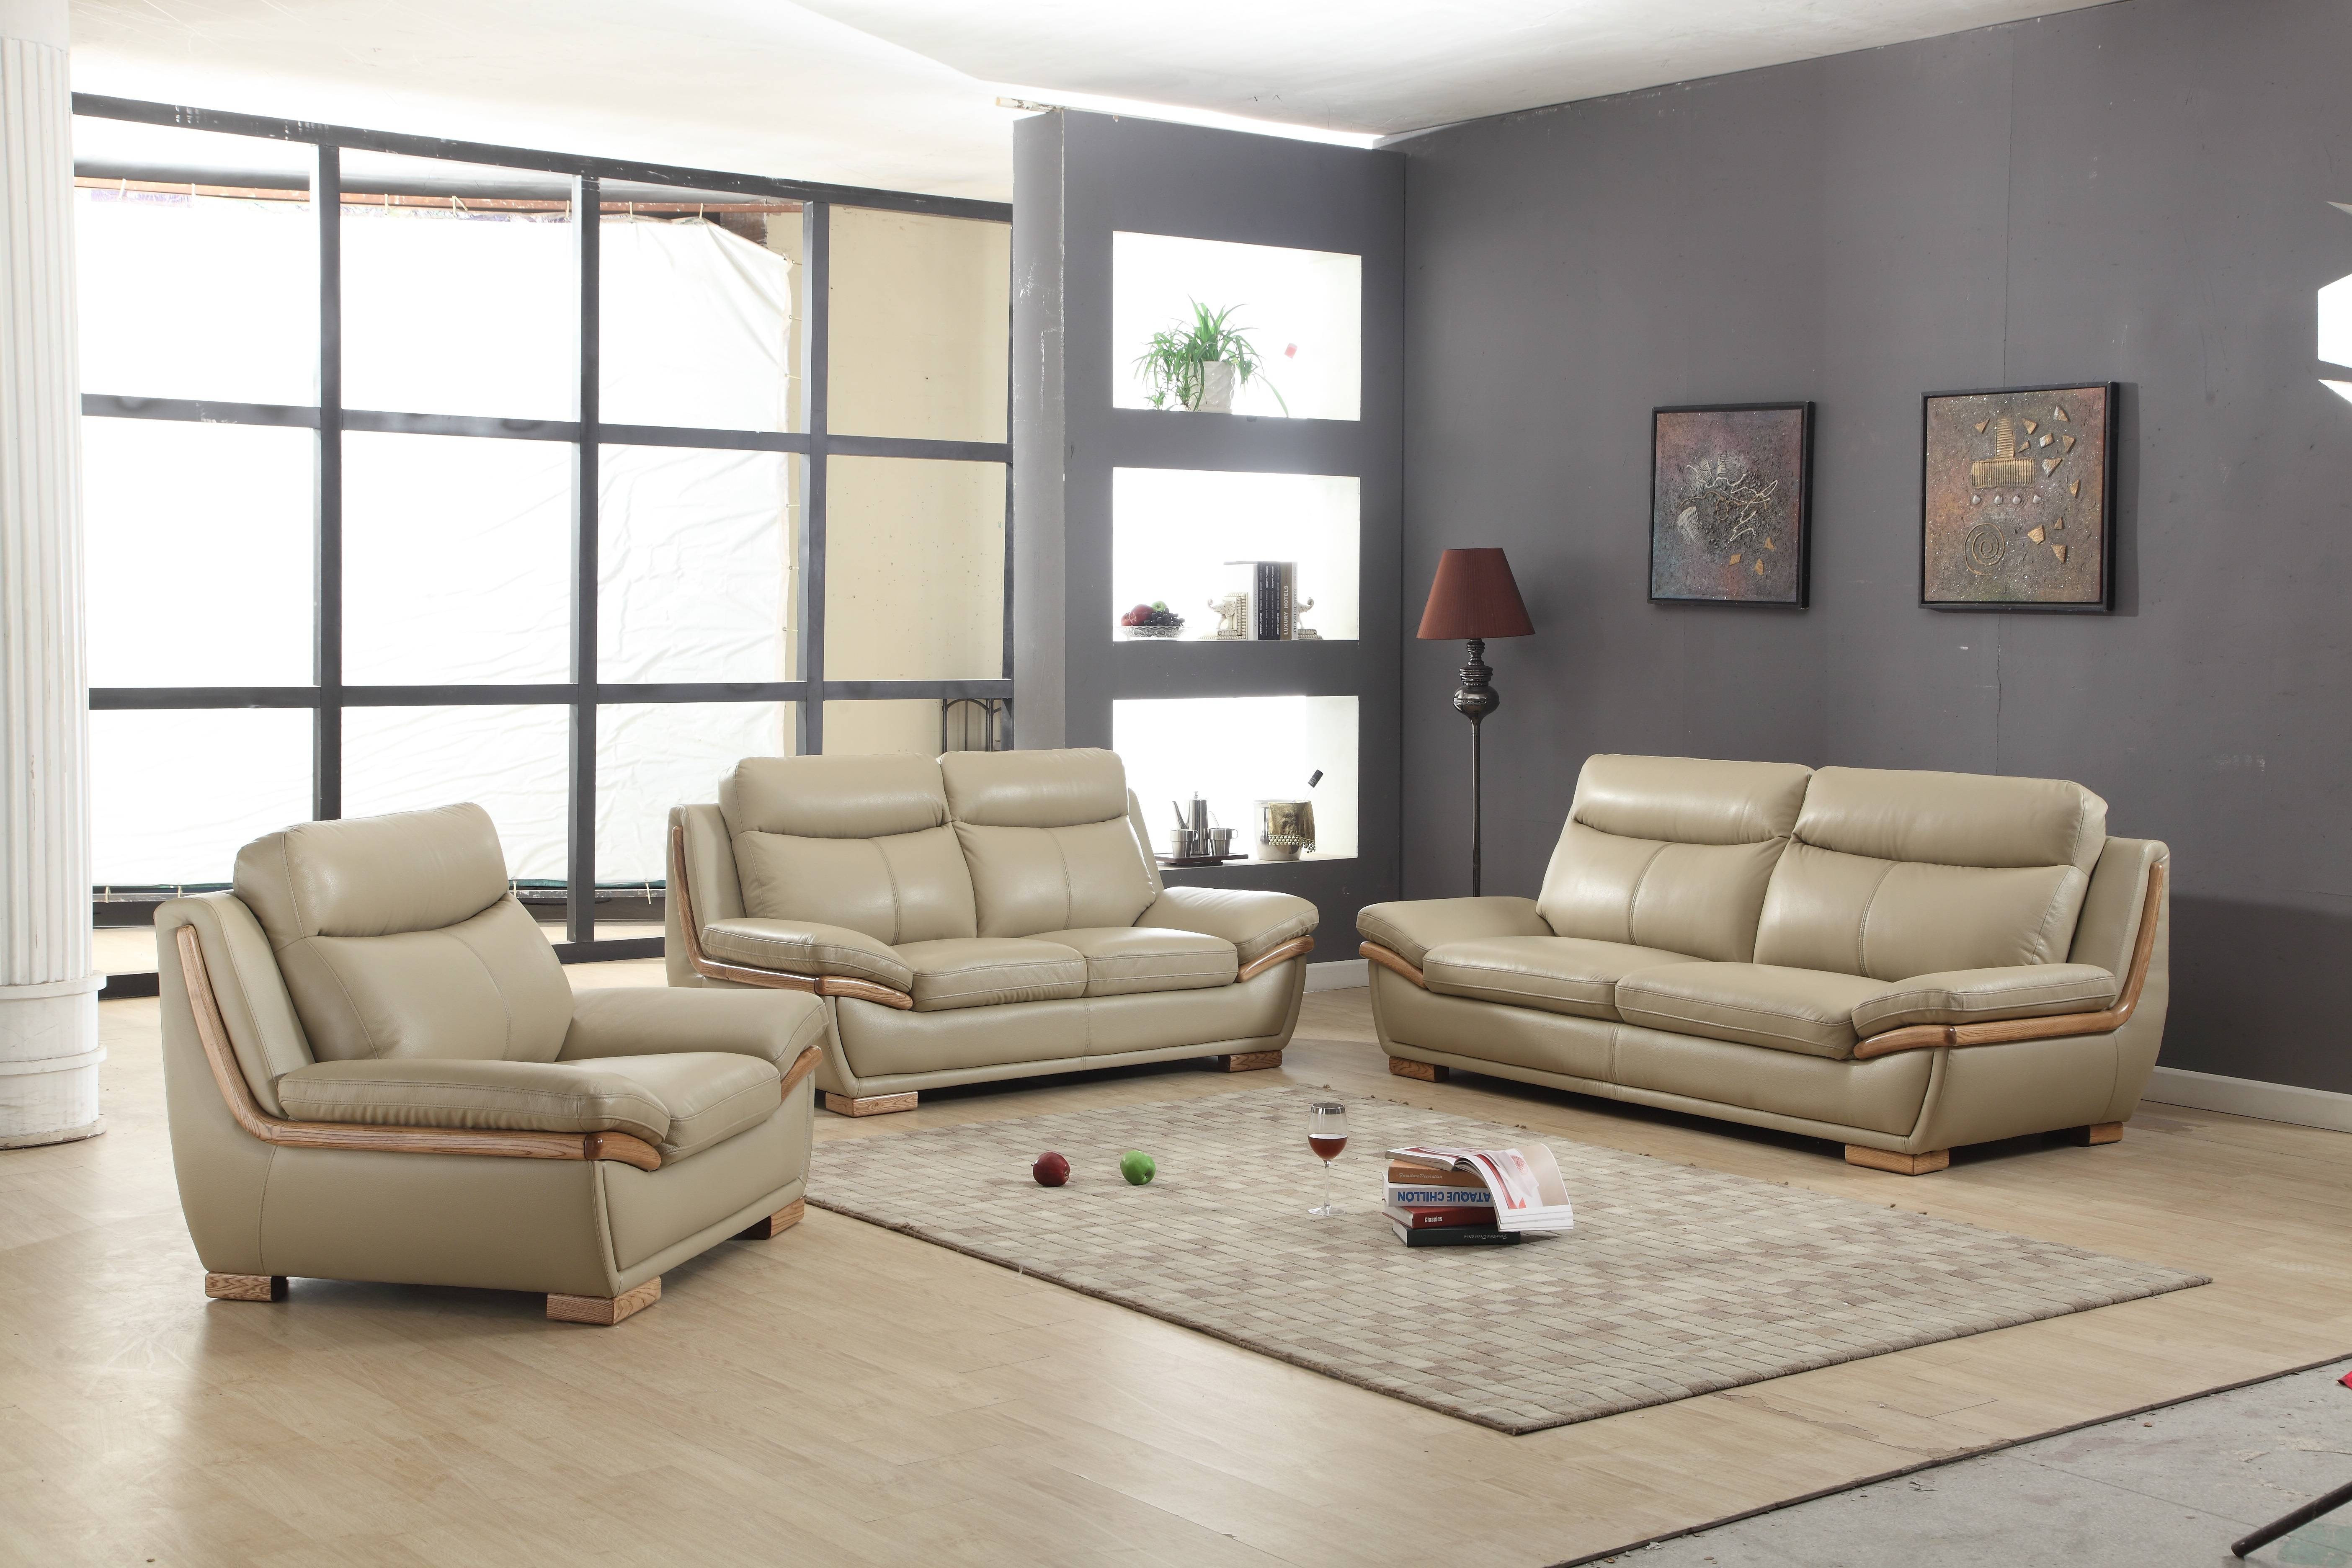 Sofas Center : Sofa Set In Taupe Leather Wood Accent Chkingstone Within European Leather Sofas (Photo 13 of 30)